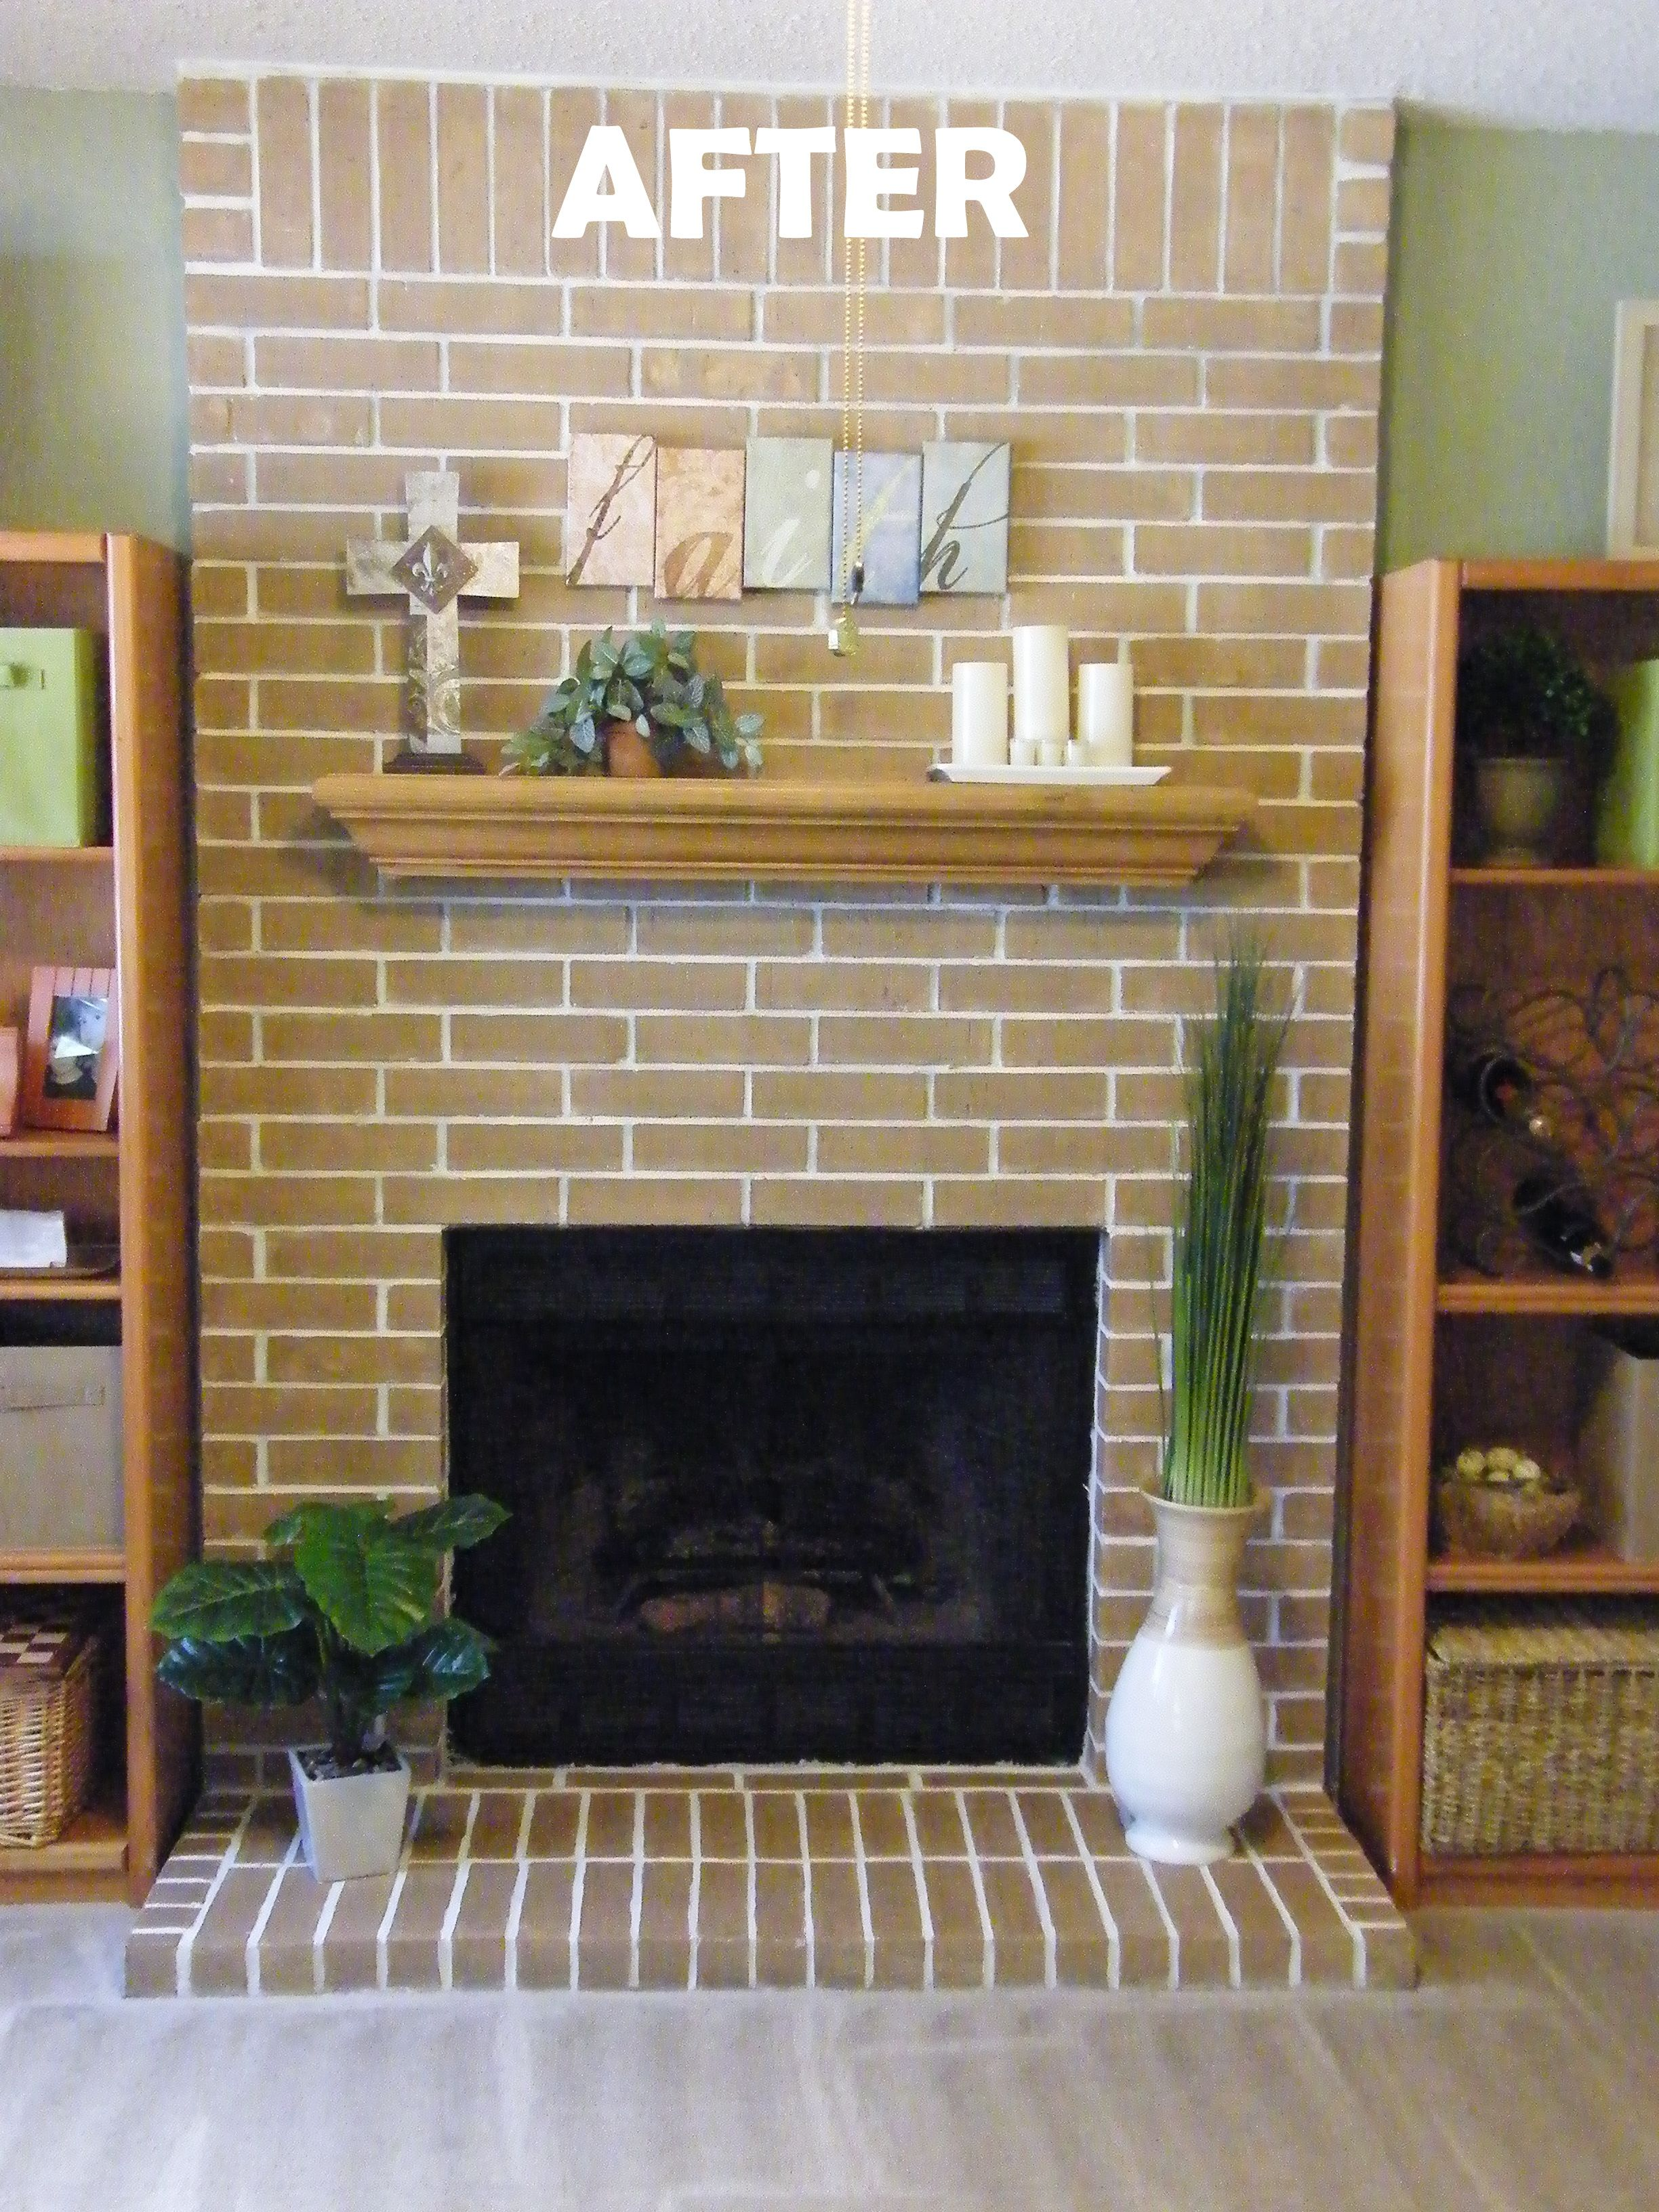 Easy Fireplace Makeover Concrete Stain Got Rid Of My Ugly Red Brick 1 White Washed And Grout 2 Rolled On Behr Water Based